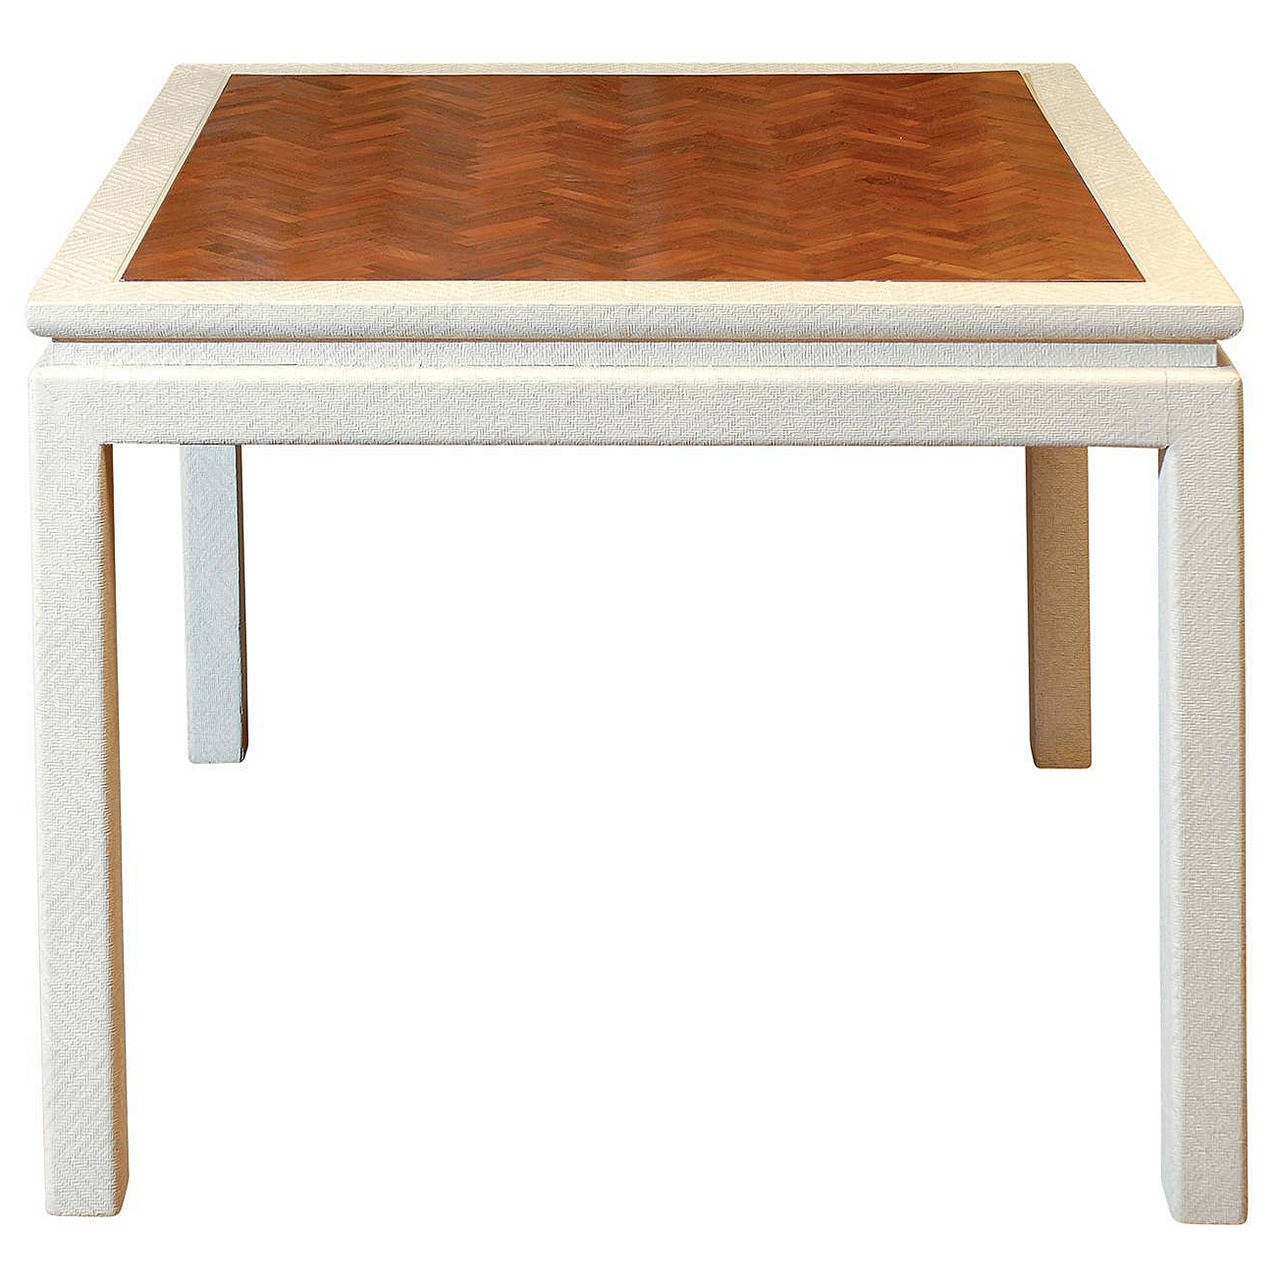 Outstanding Cream Raffia Game Table with Walnut Parquet Top at 1stdibs